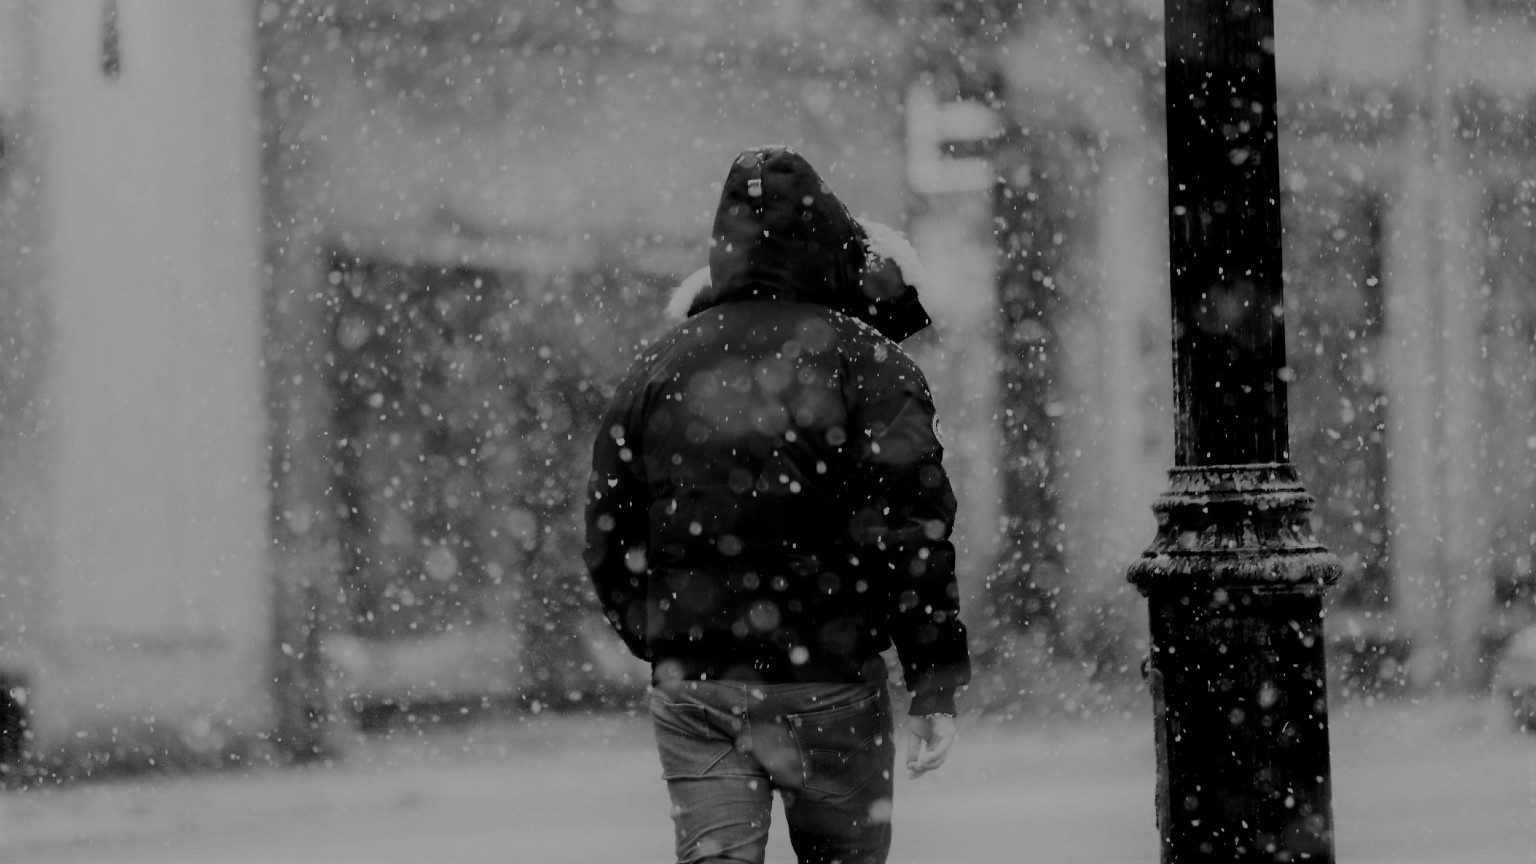 A man walking in snow